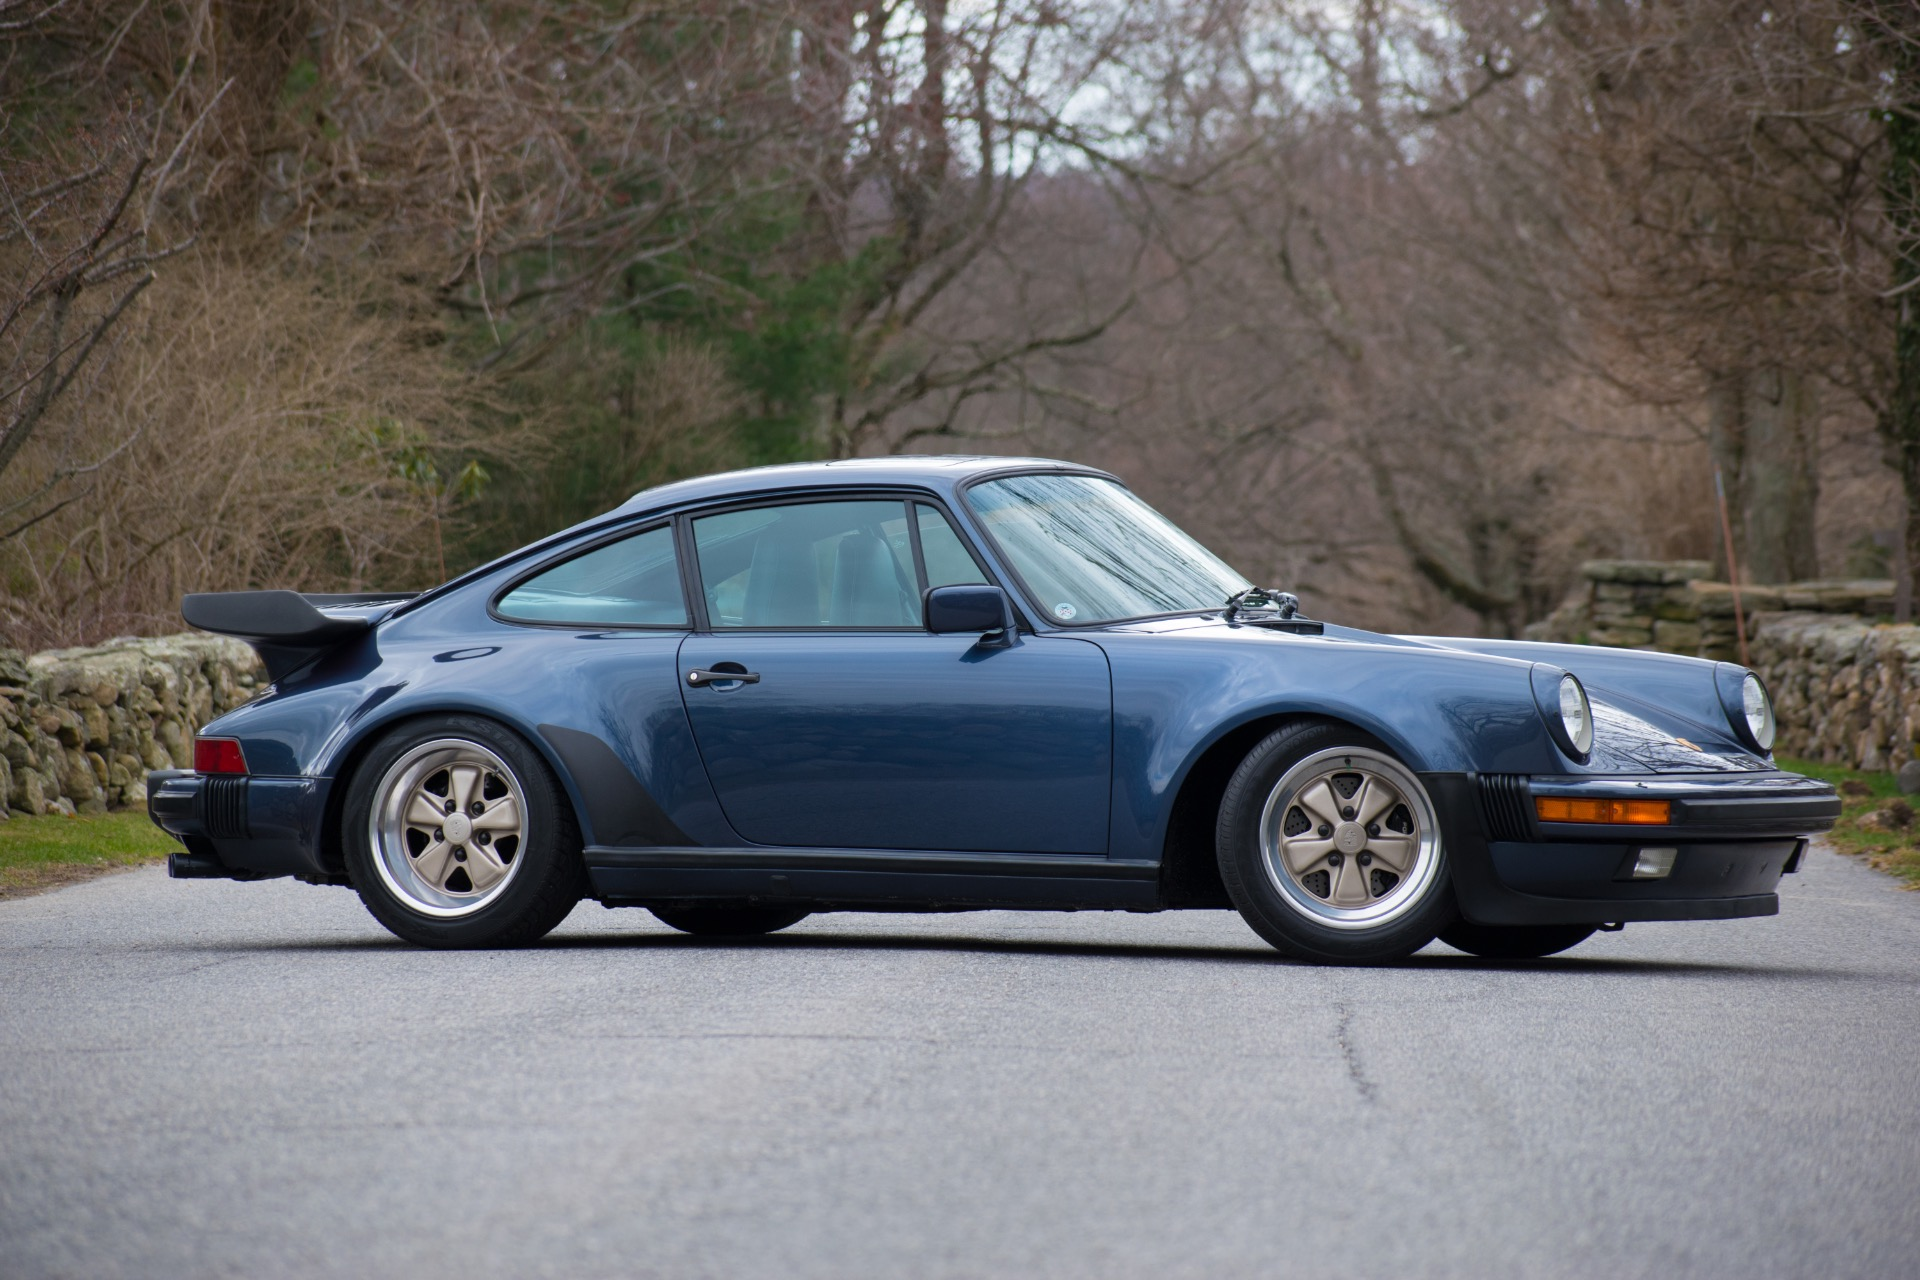 1986 Porsche 911 Turbo Carrera